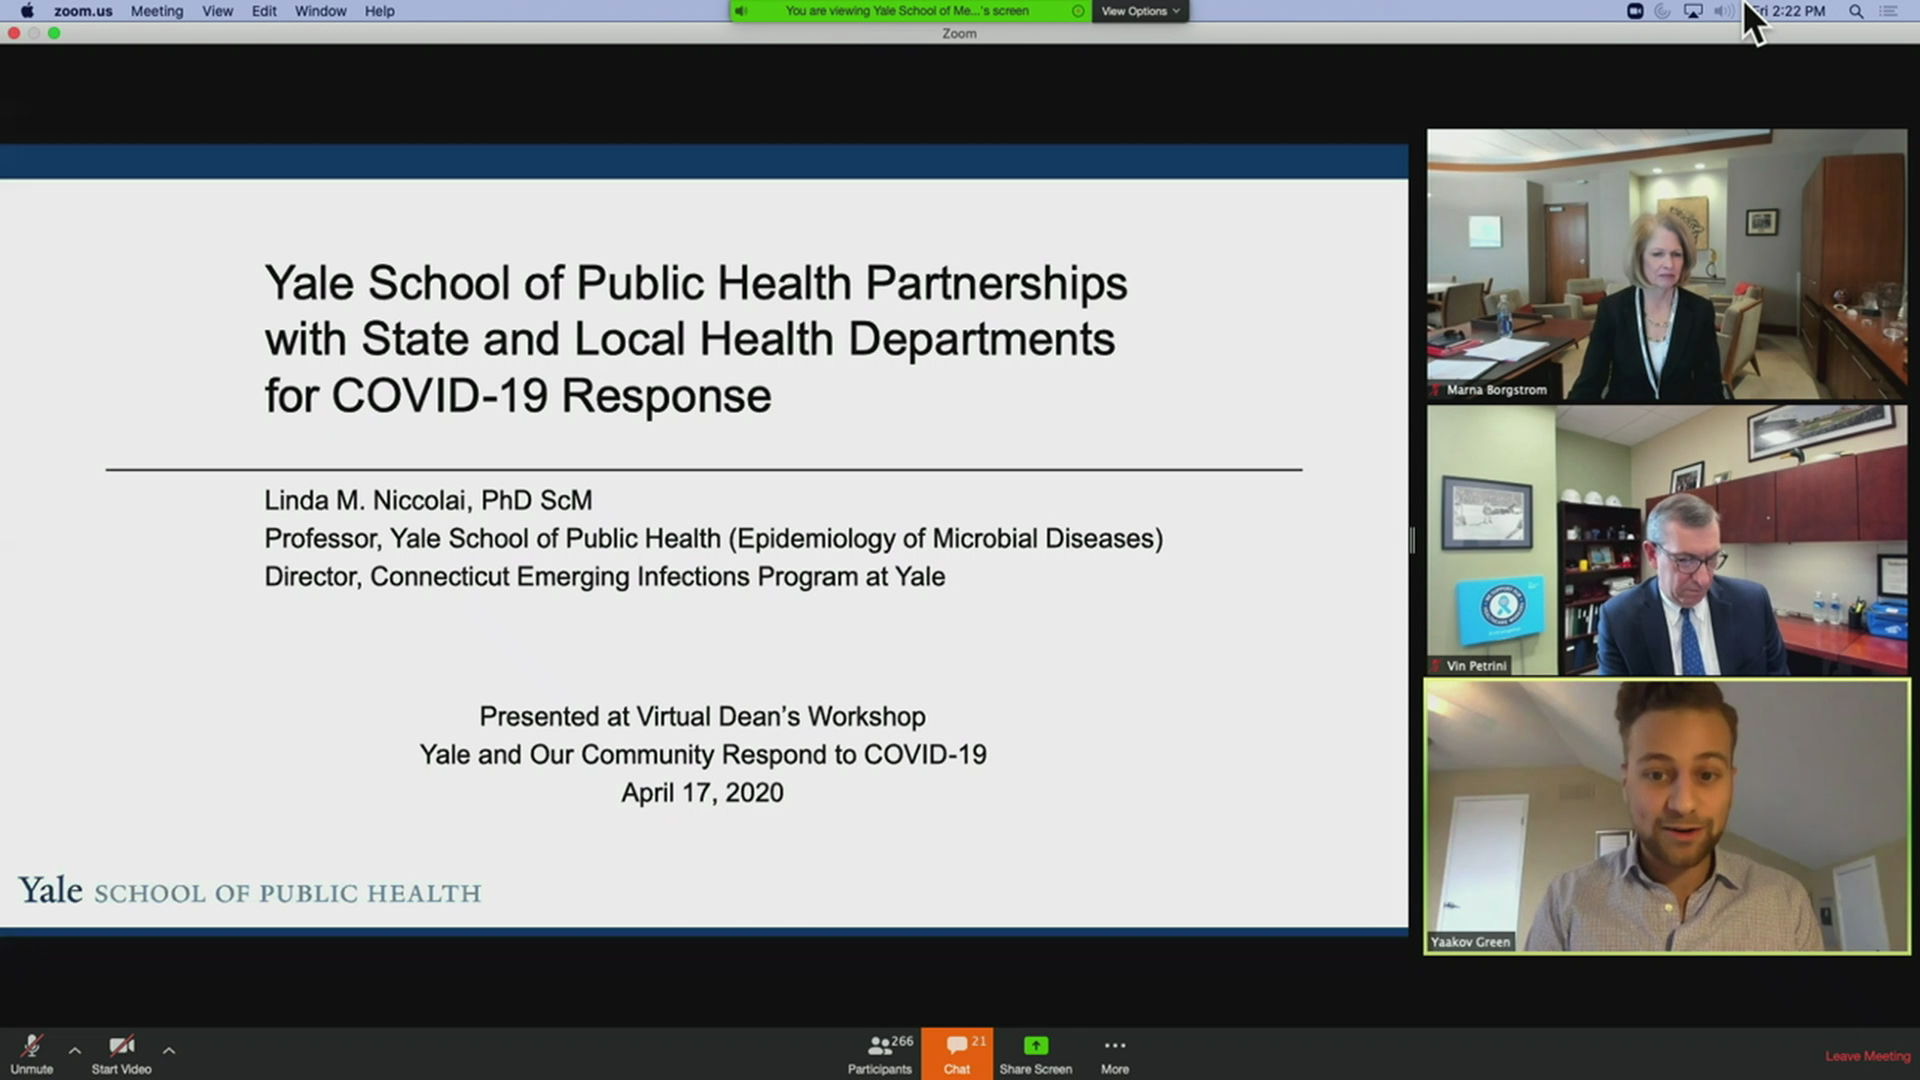 Yale School of Public Health Partnerships With State And Local Health Departments For Covid-19 Response